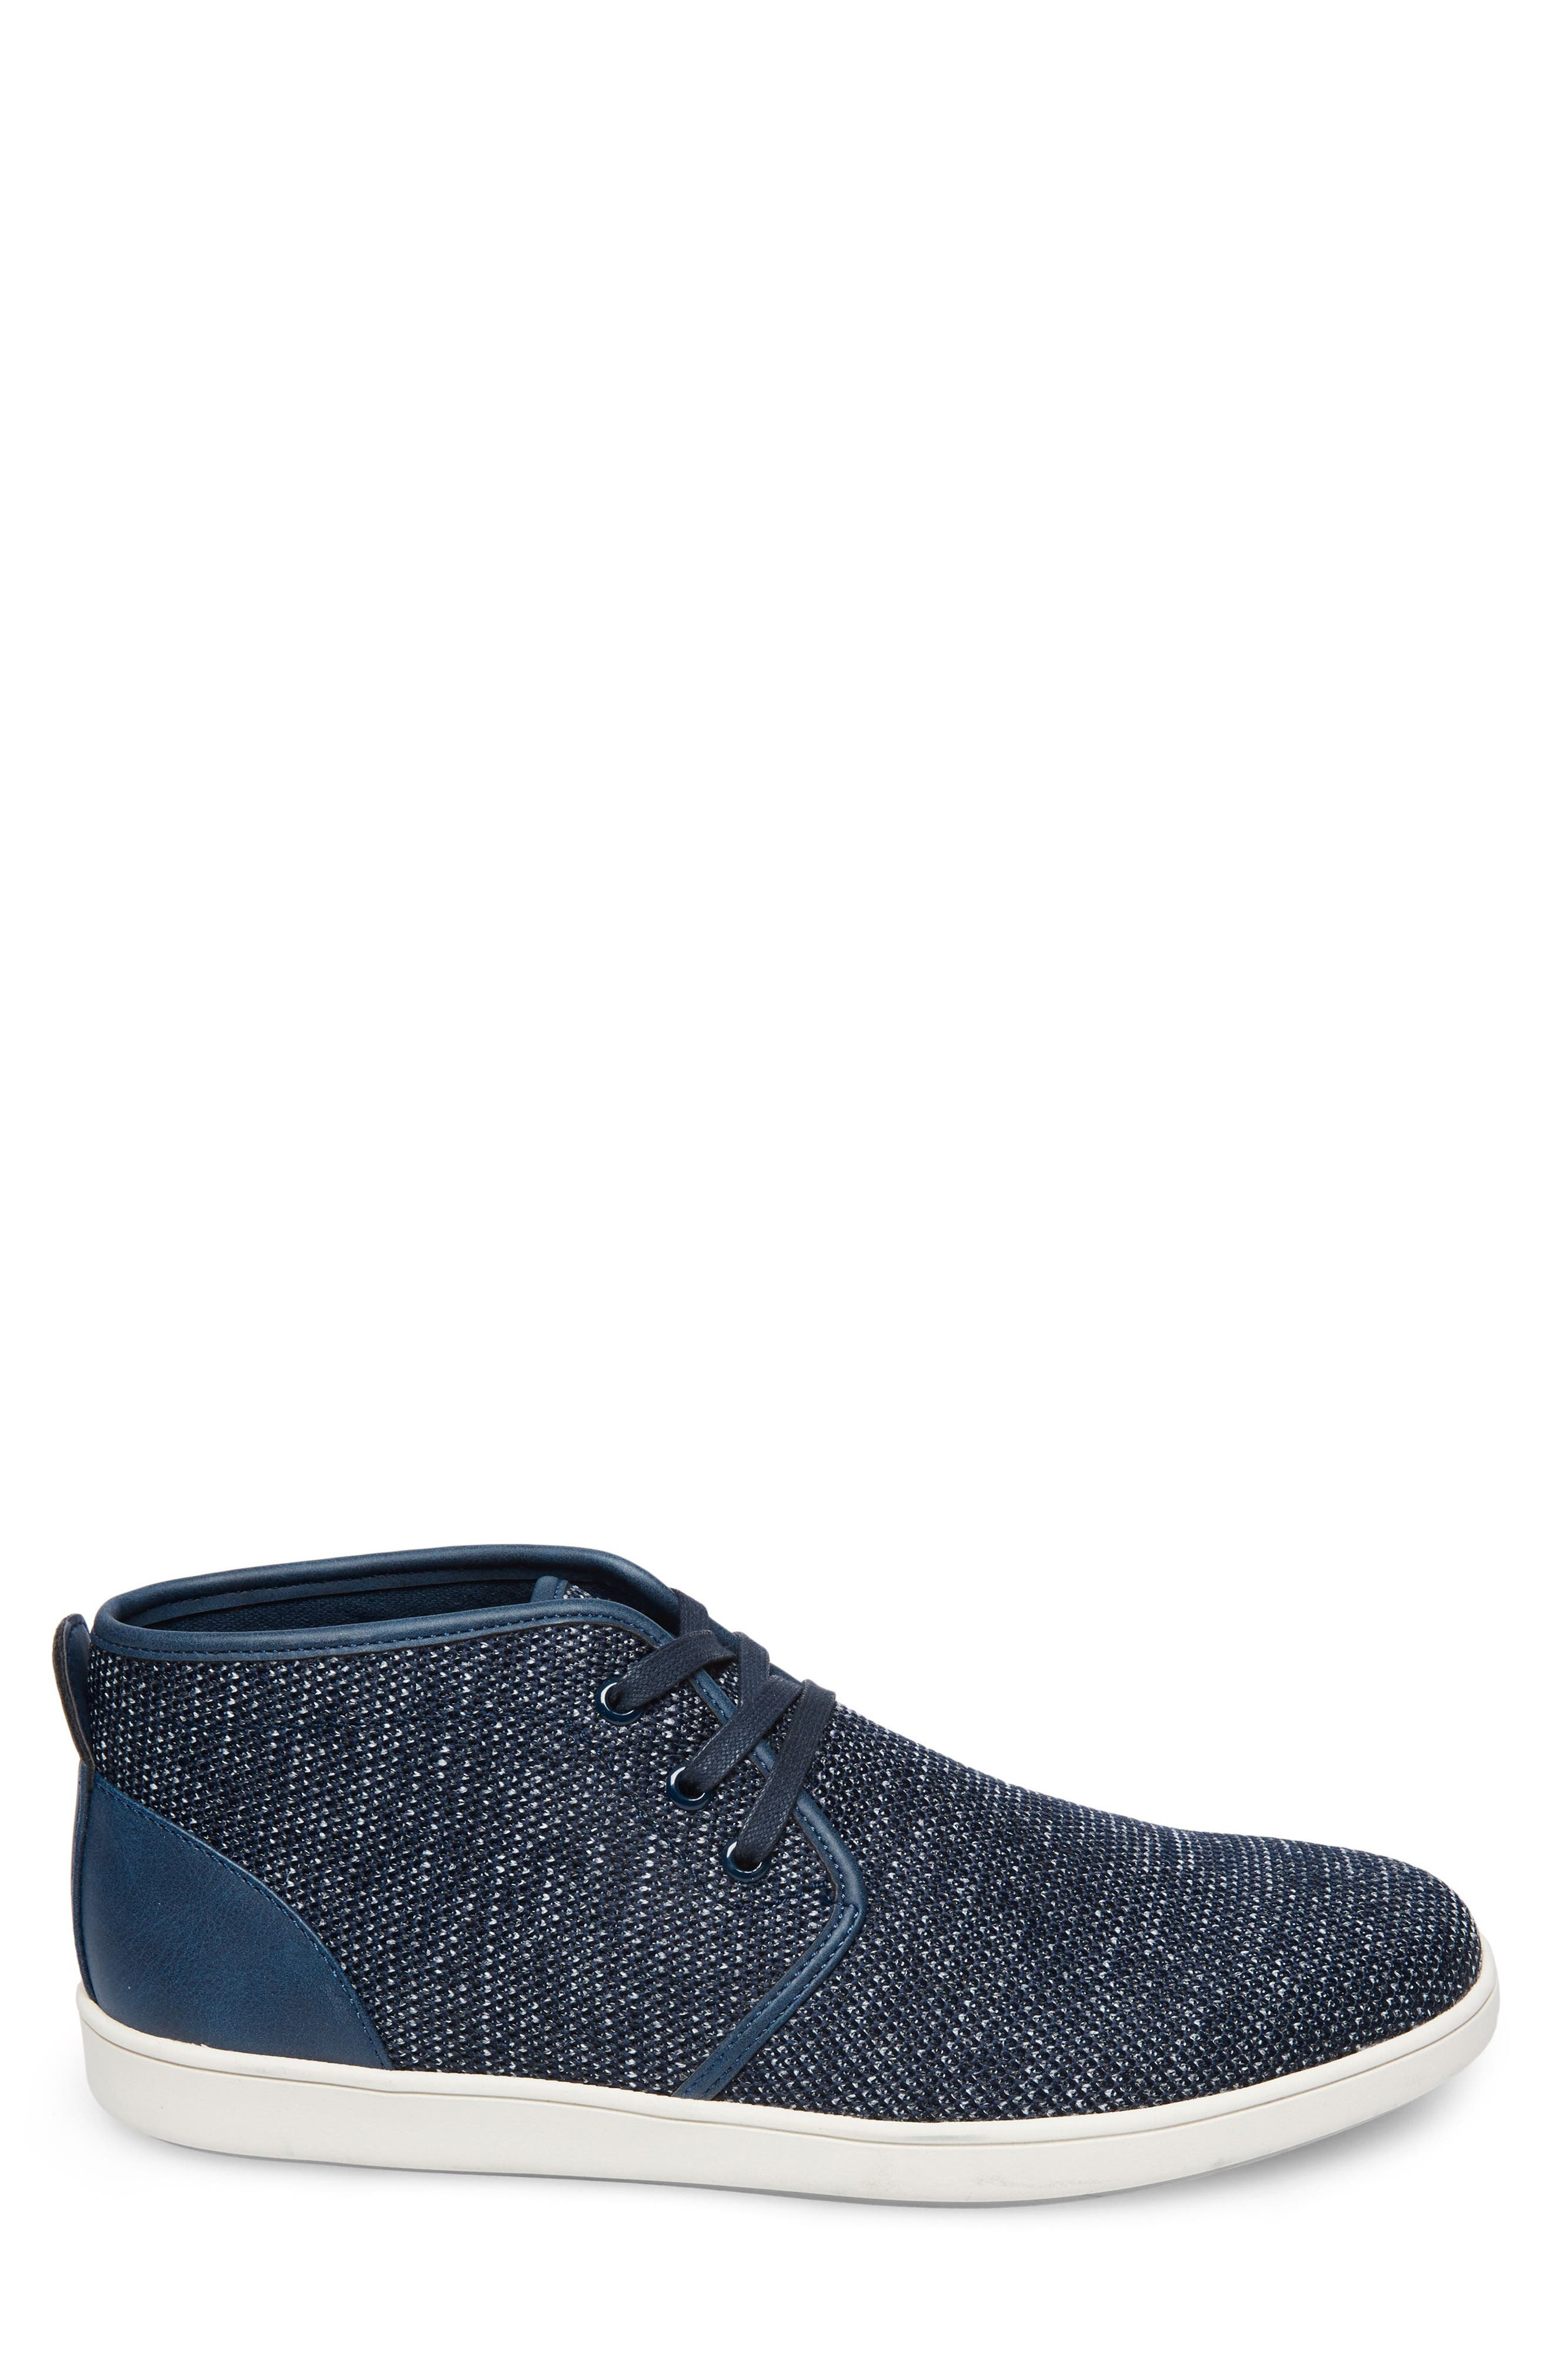 Fowler Knit Mid Top Sneaker,                             Alternate thumbnail 3, color,                             NAVY LEATHER